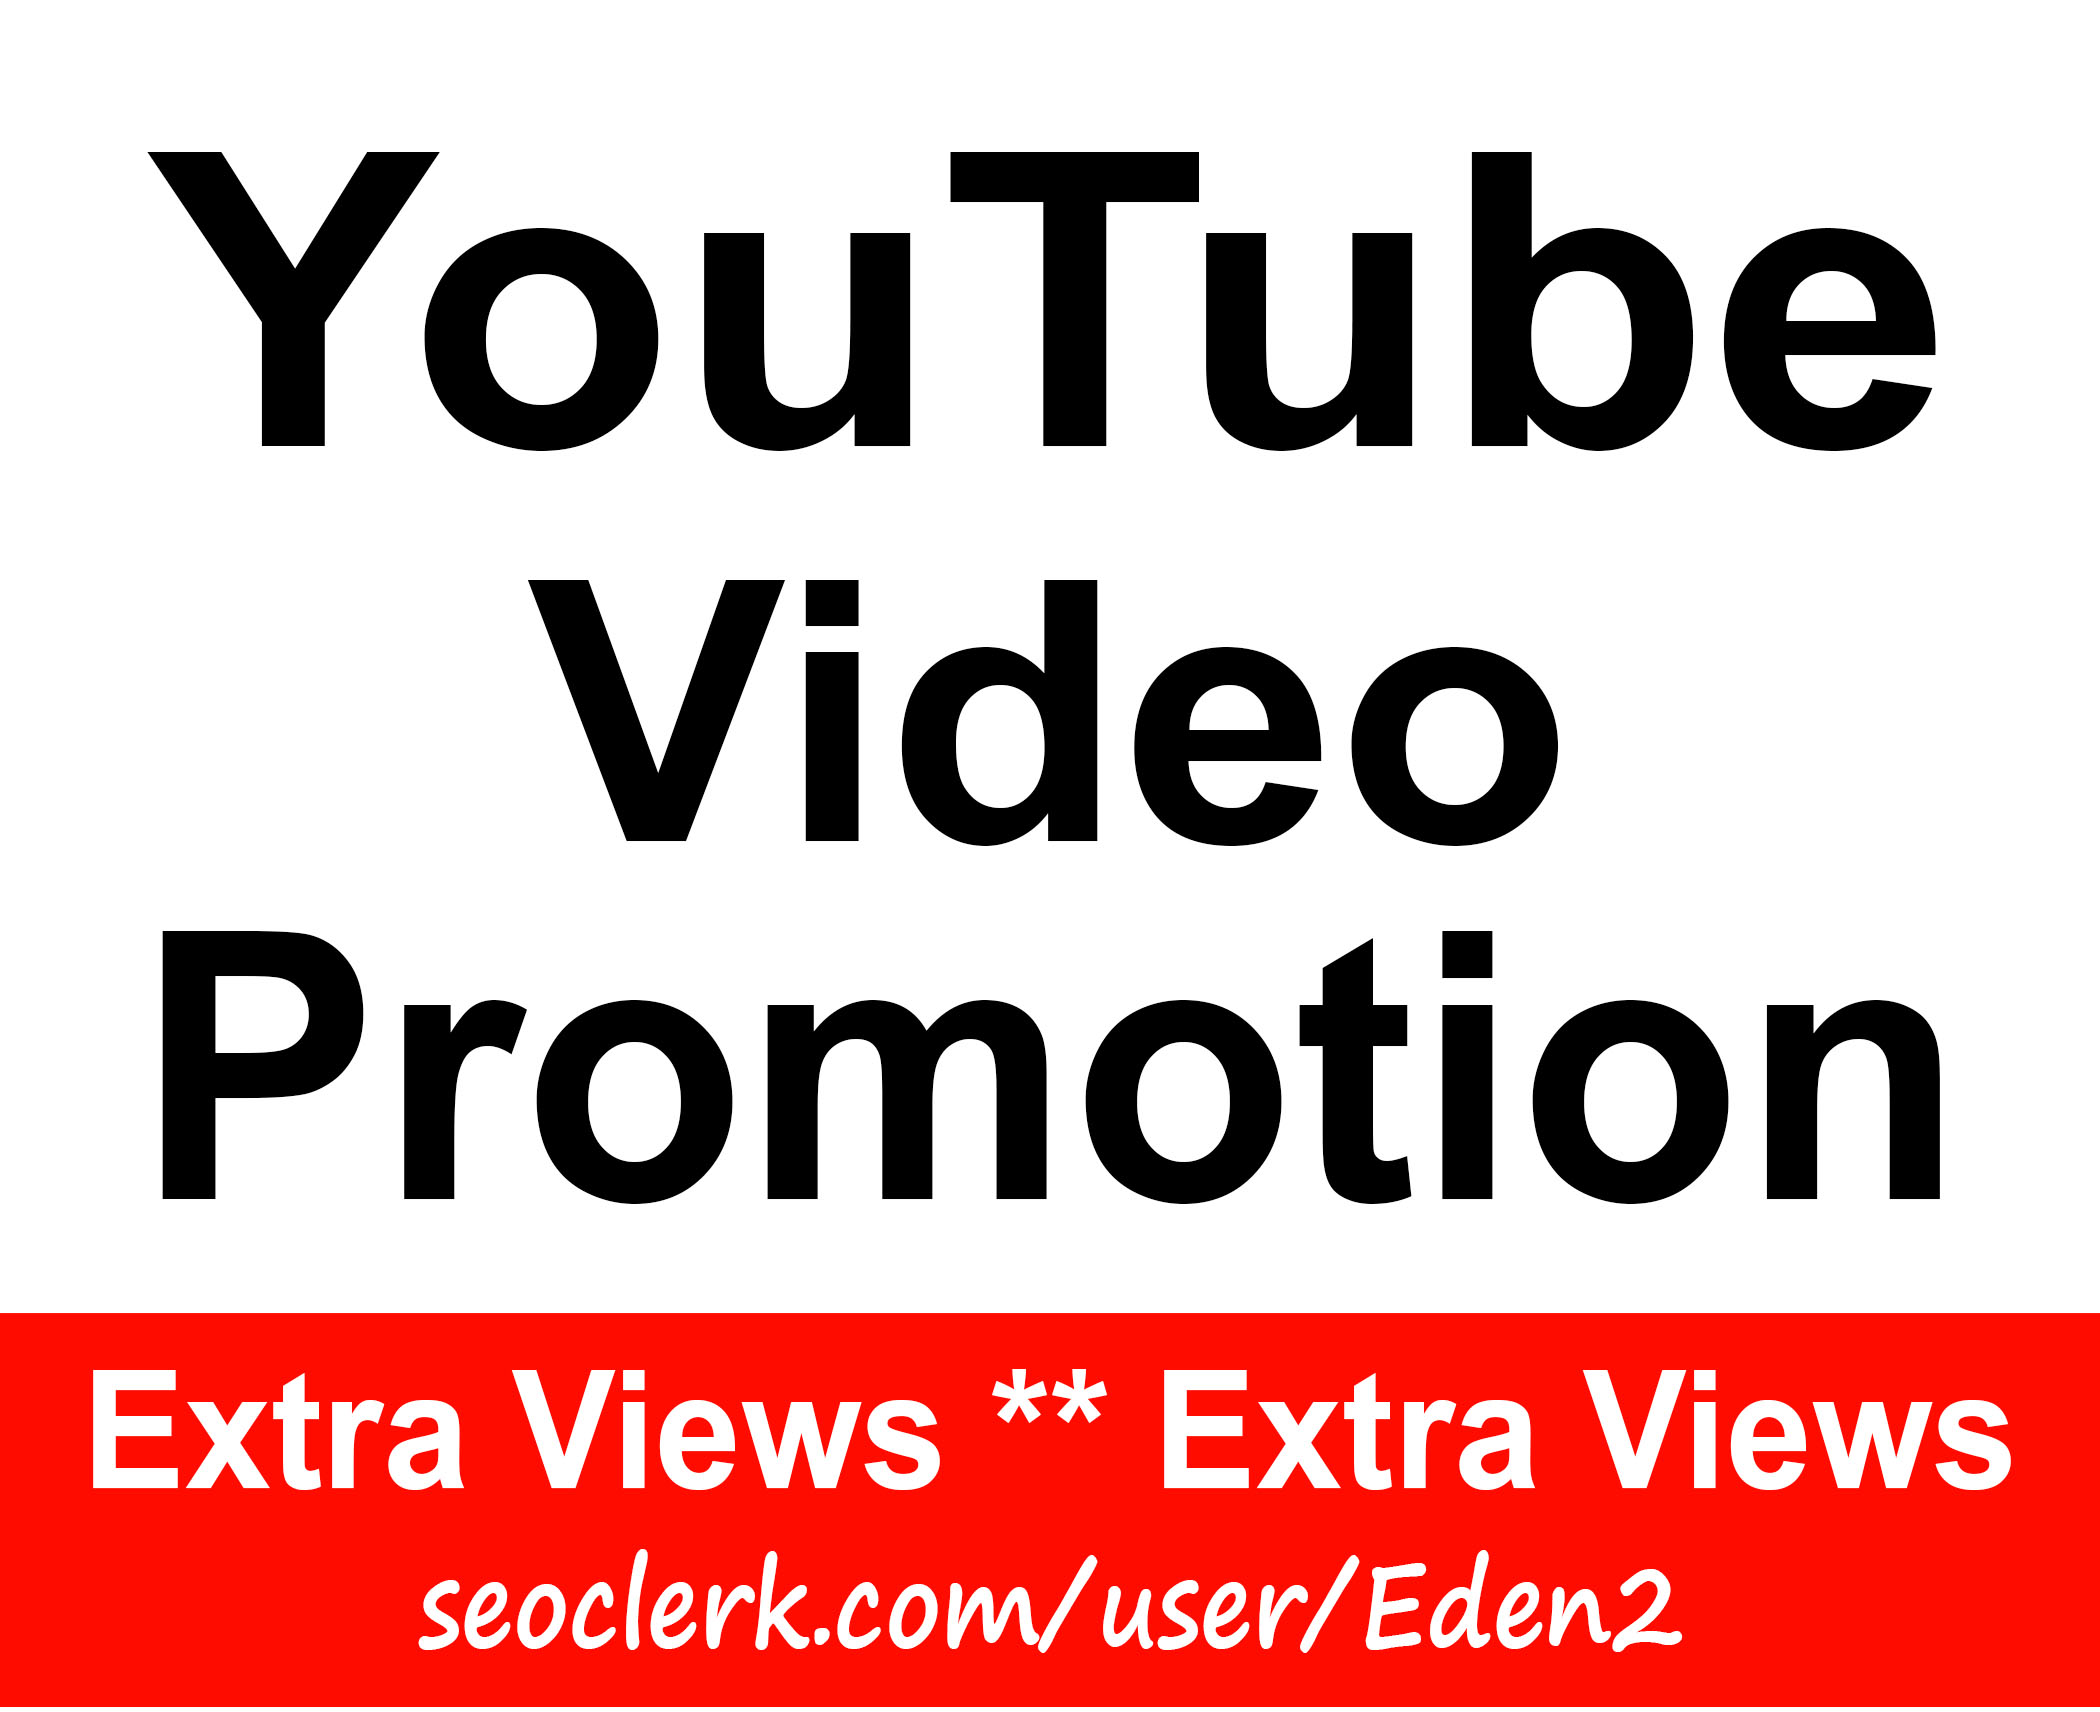 YouTube Video Promotion Non Drop & Good For Ranking